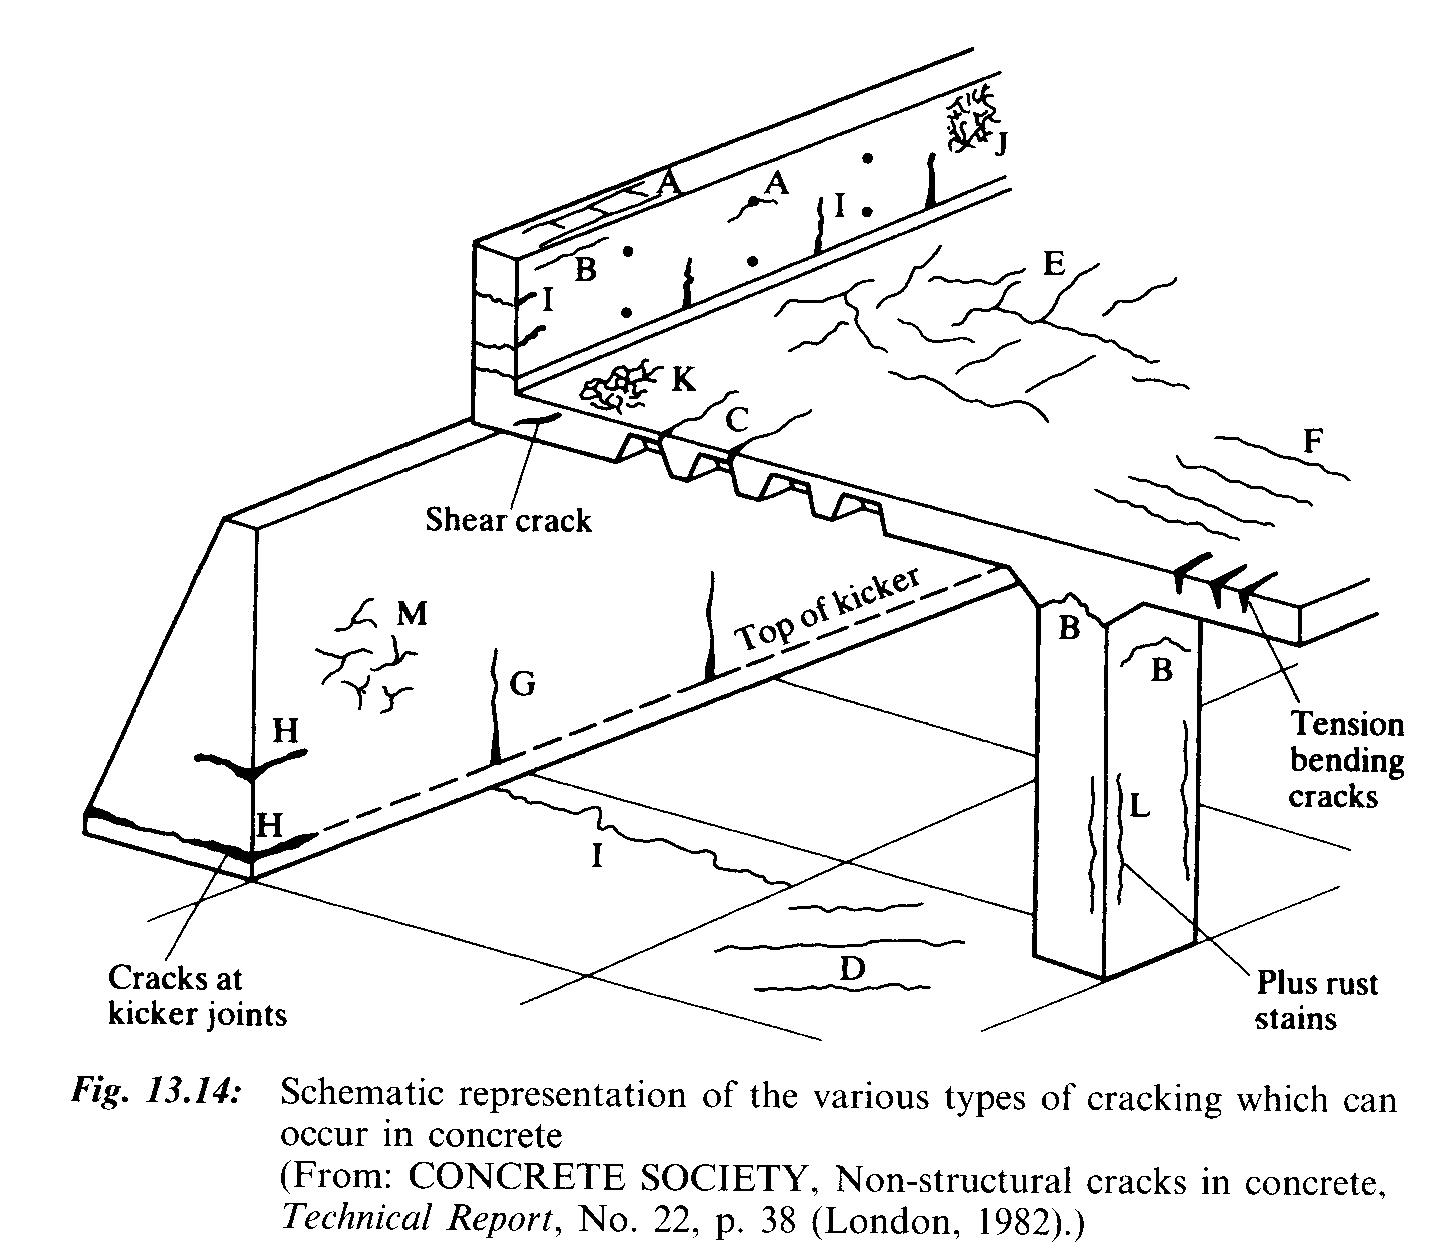 Retaining walls: Statistics about failure modes and accidents?